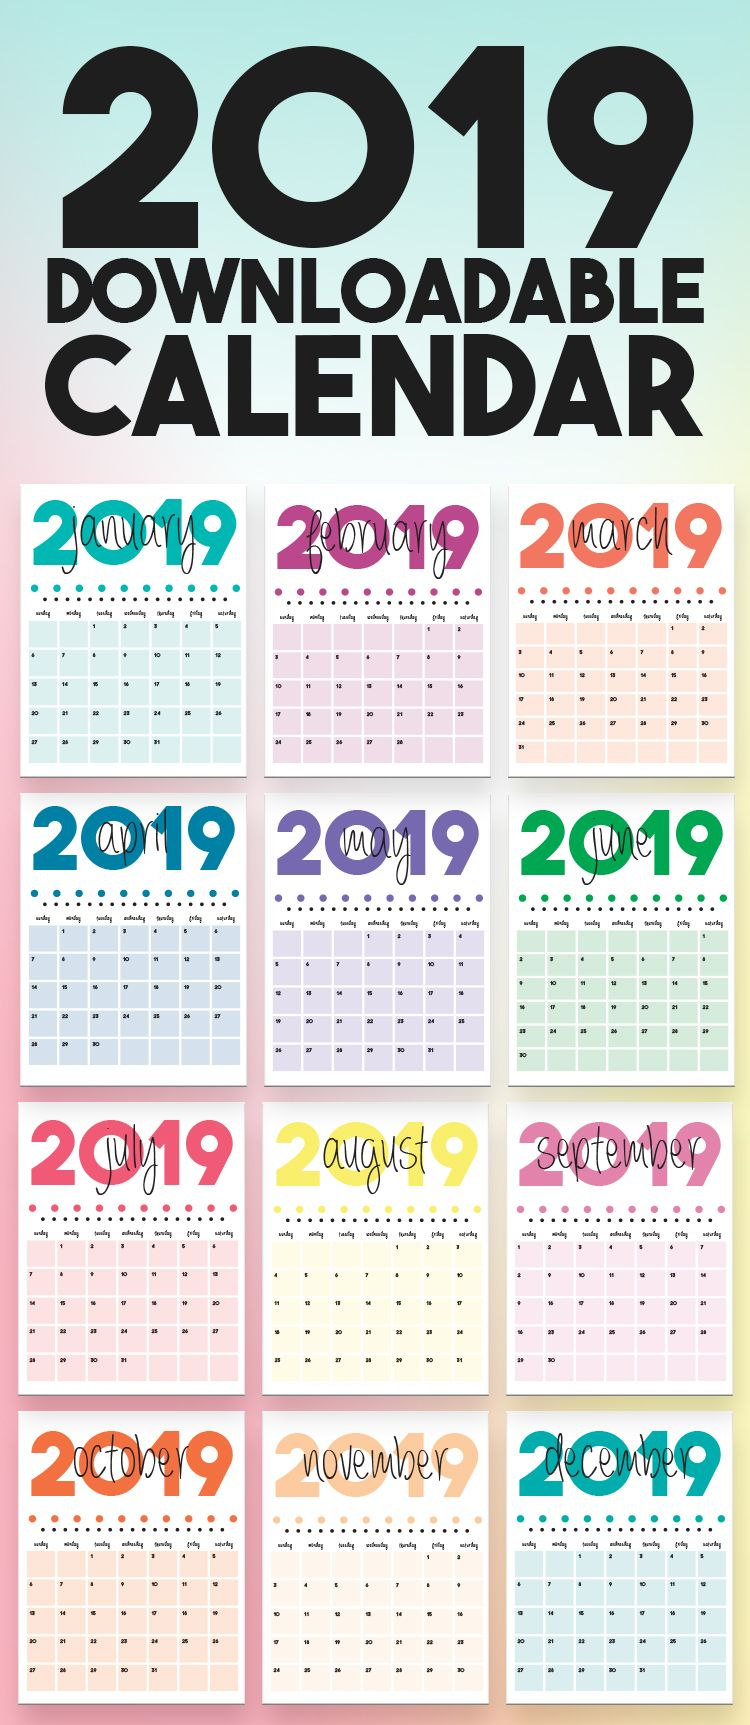 2020 Printable Calendars And Planners | Emerald And Mint Designs in 8.5 X 11 Calander Filler For 2020